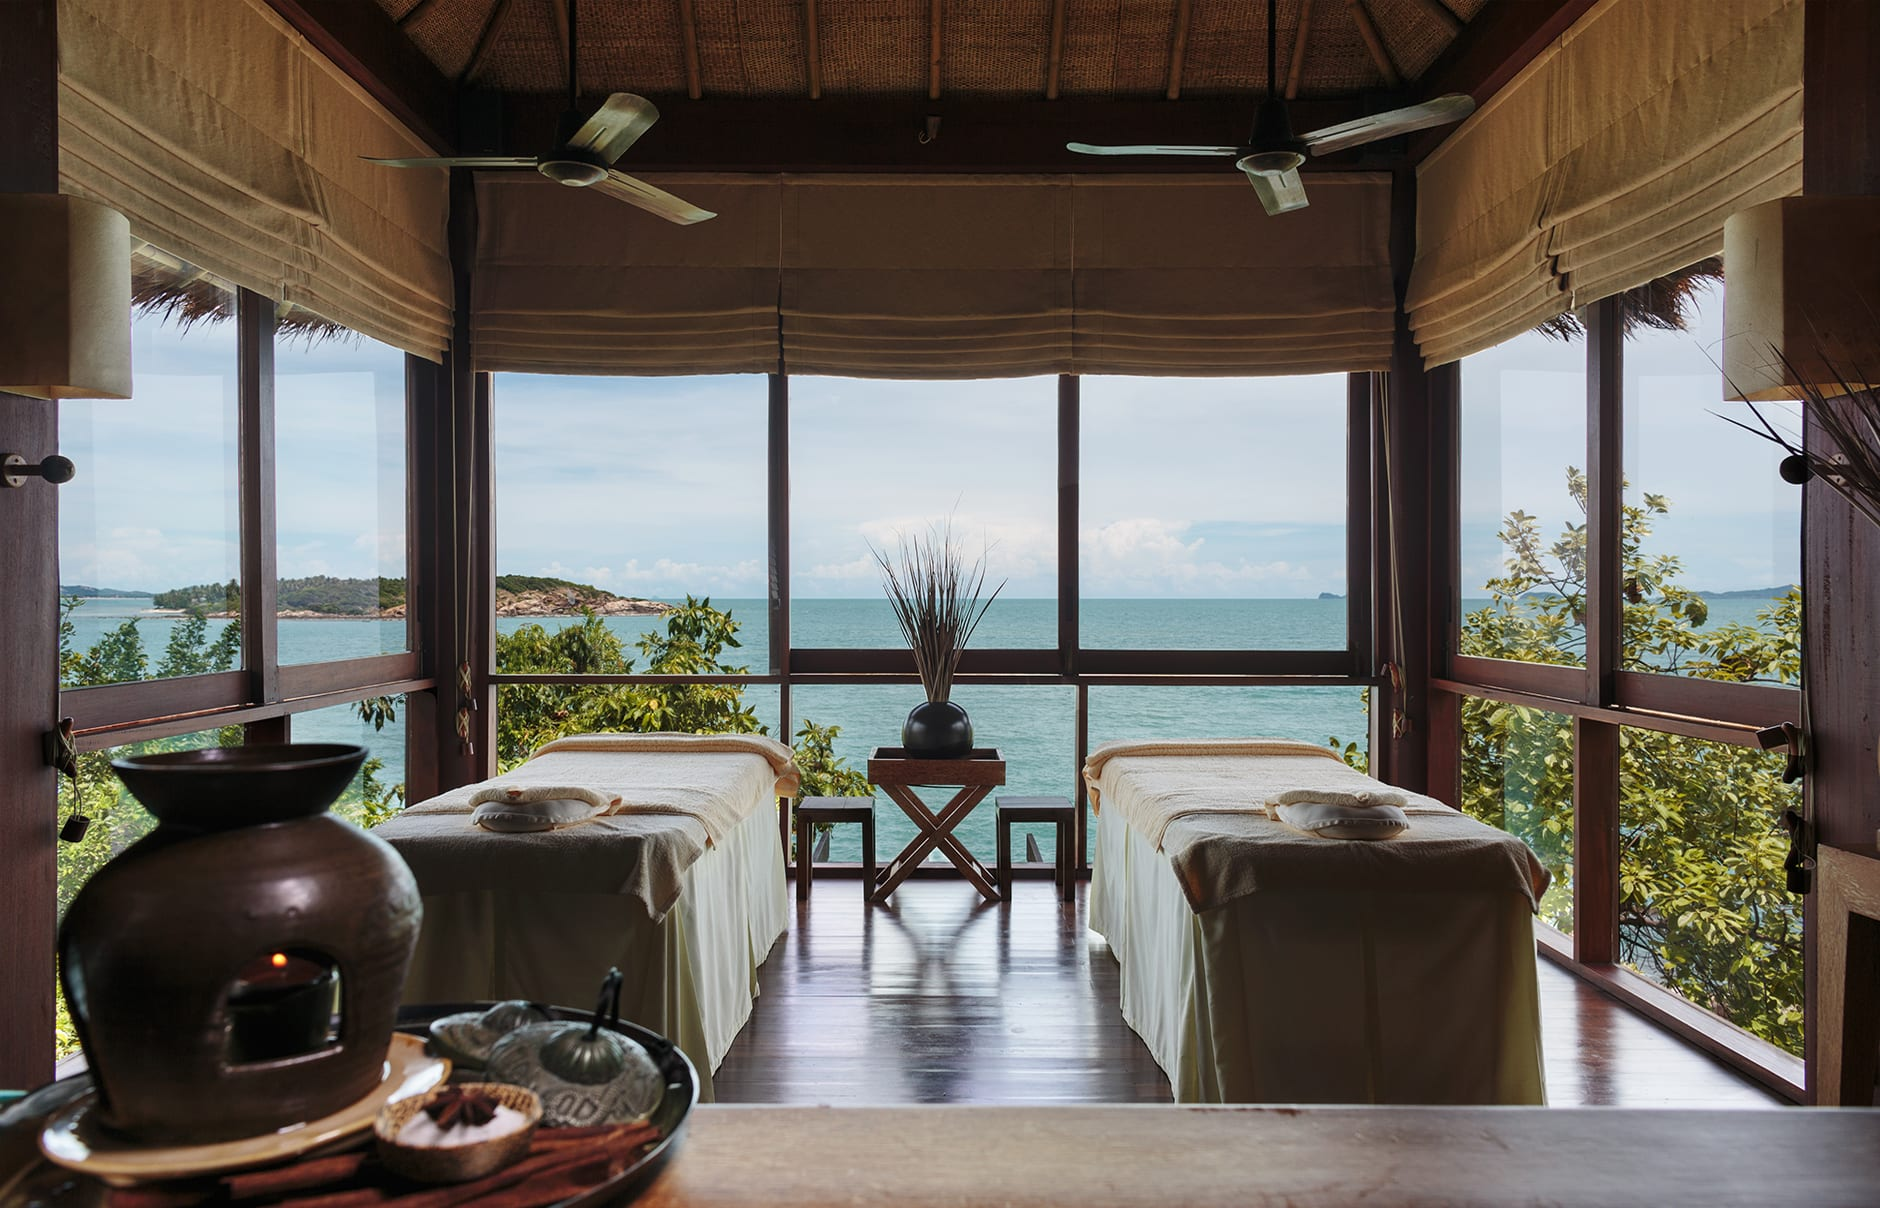 Six Senses Spa. Six Senses Samui, Thailand. © Six Senses Resorts & Spas